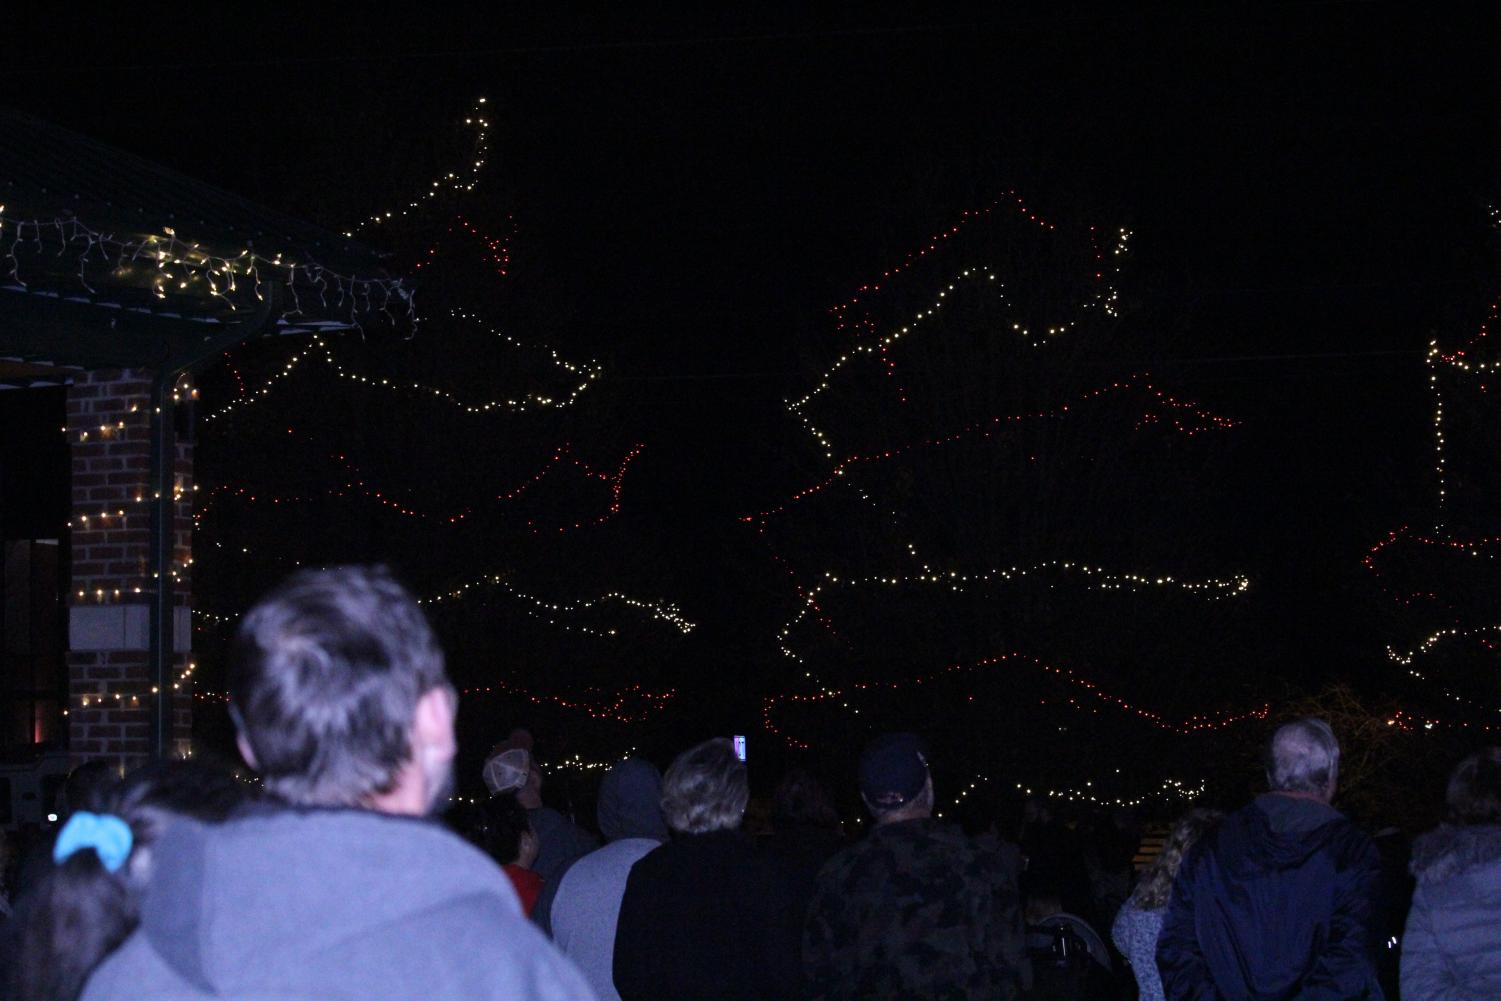 After the singing of various choirs and the parade, citizens gather to watch the lighting of multiple Christmas trees and nearby buildings. Once everything was lit, fireworks were set off.